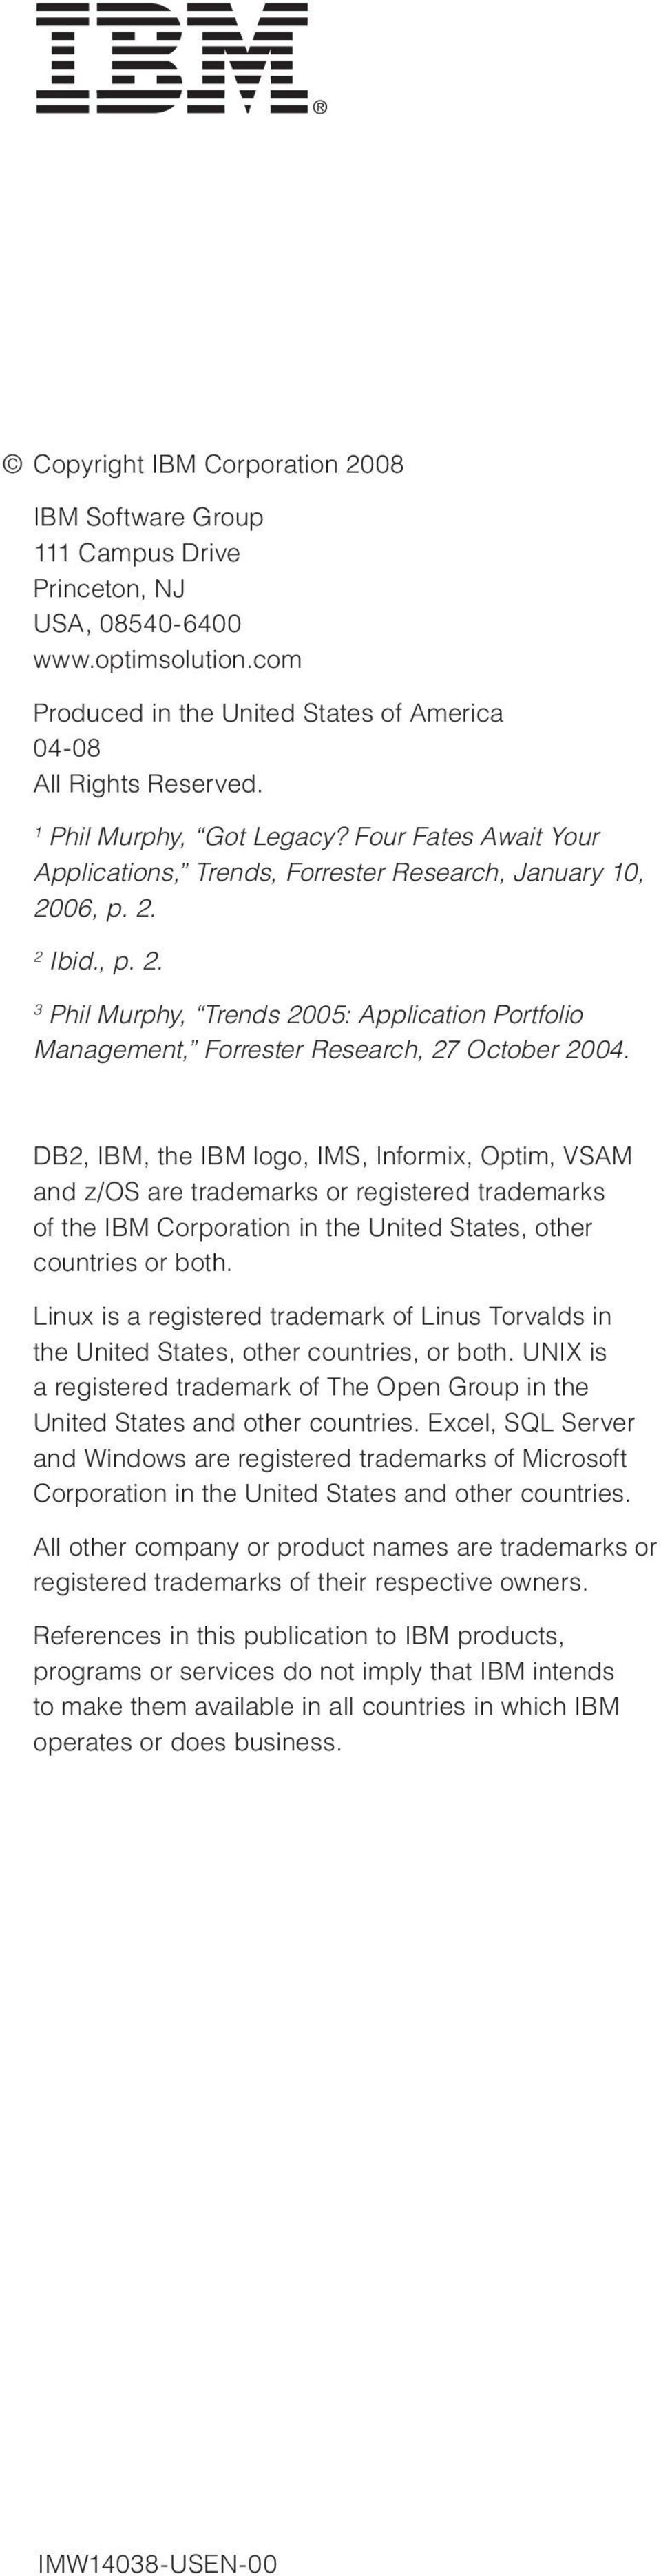 06, p. 2. 2 Ibid., p. 2. 3 Phil Murphy, Trends 2005: Application Portfolio Management, Forrester Research, 27 October 2004.